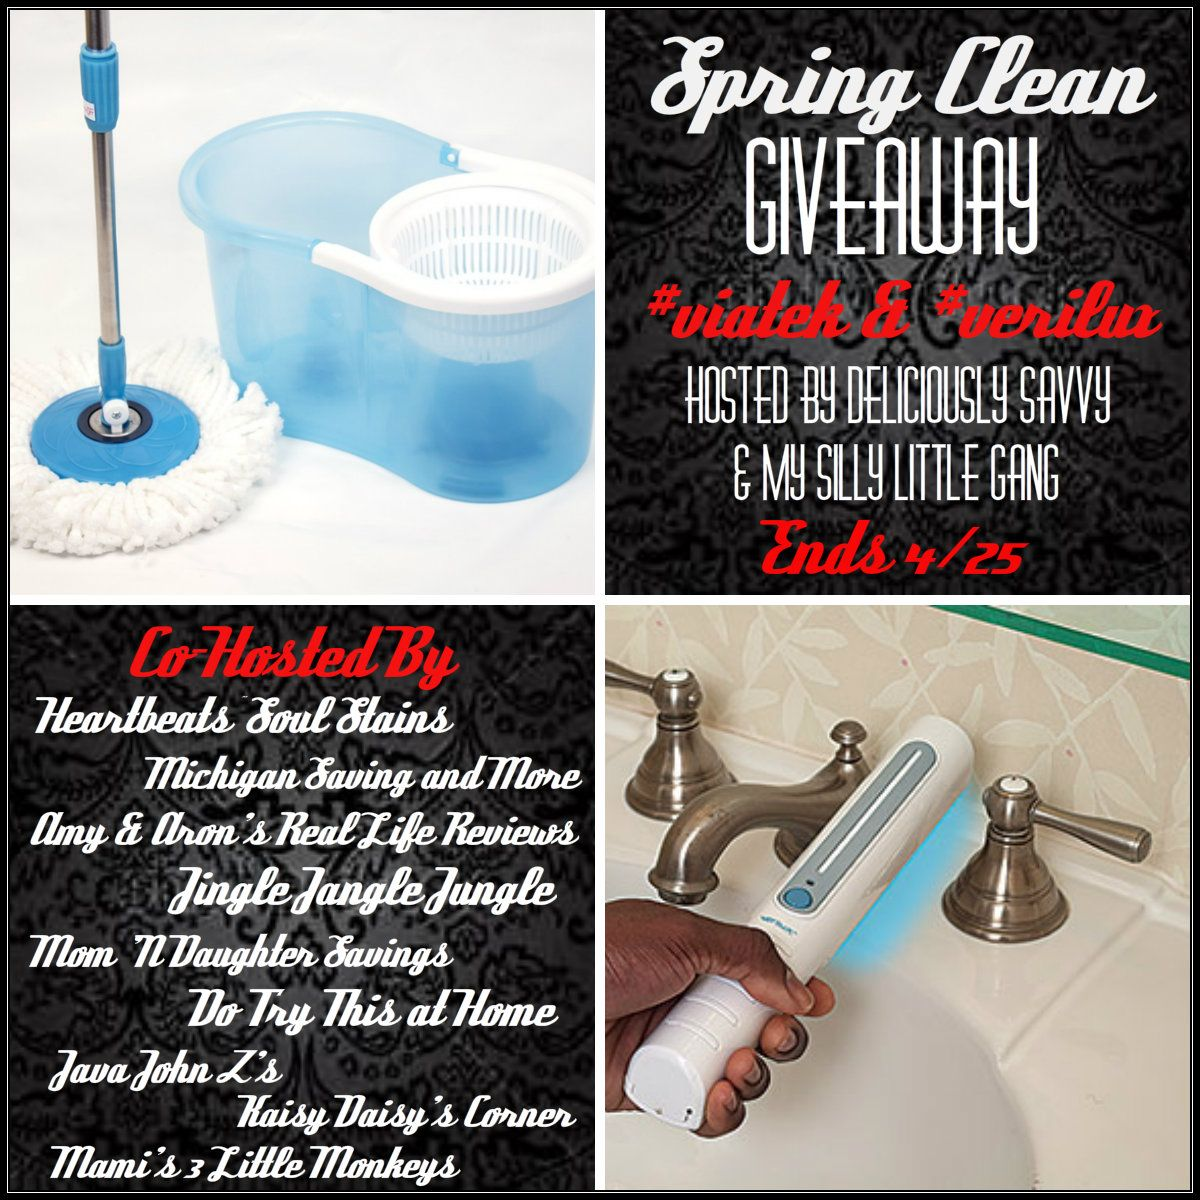 The Spring Clean Giveaway (2 Winners) 04/25 ~ Tales From A Southern Mom